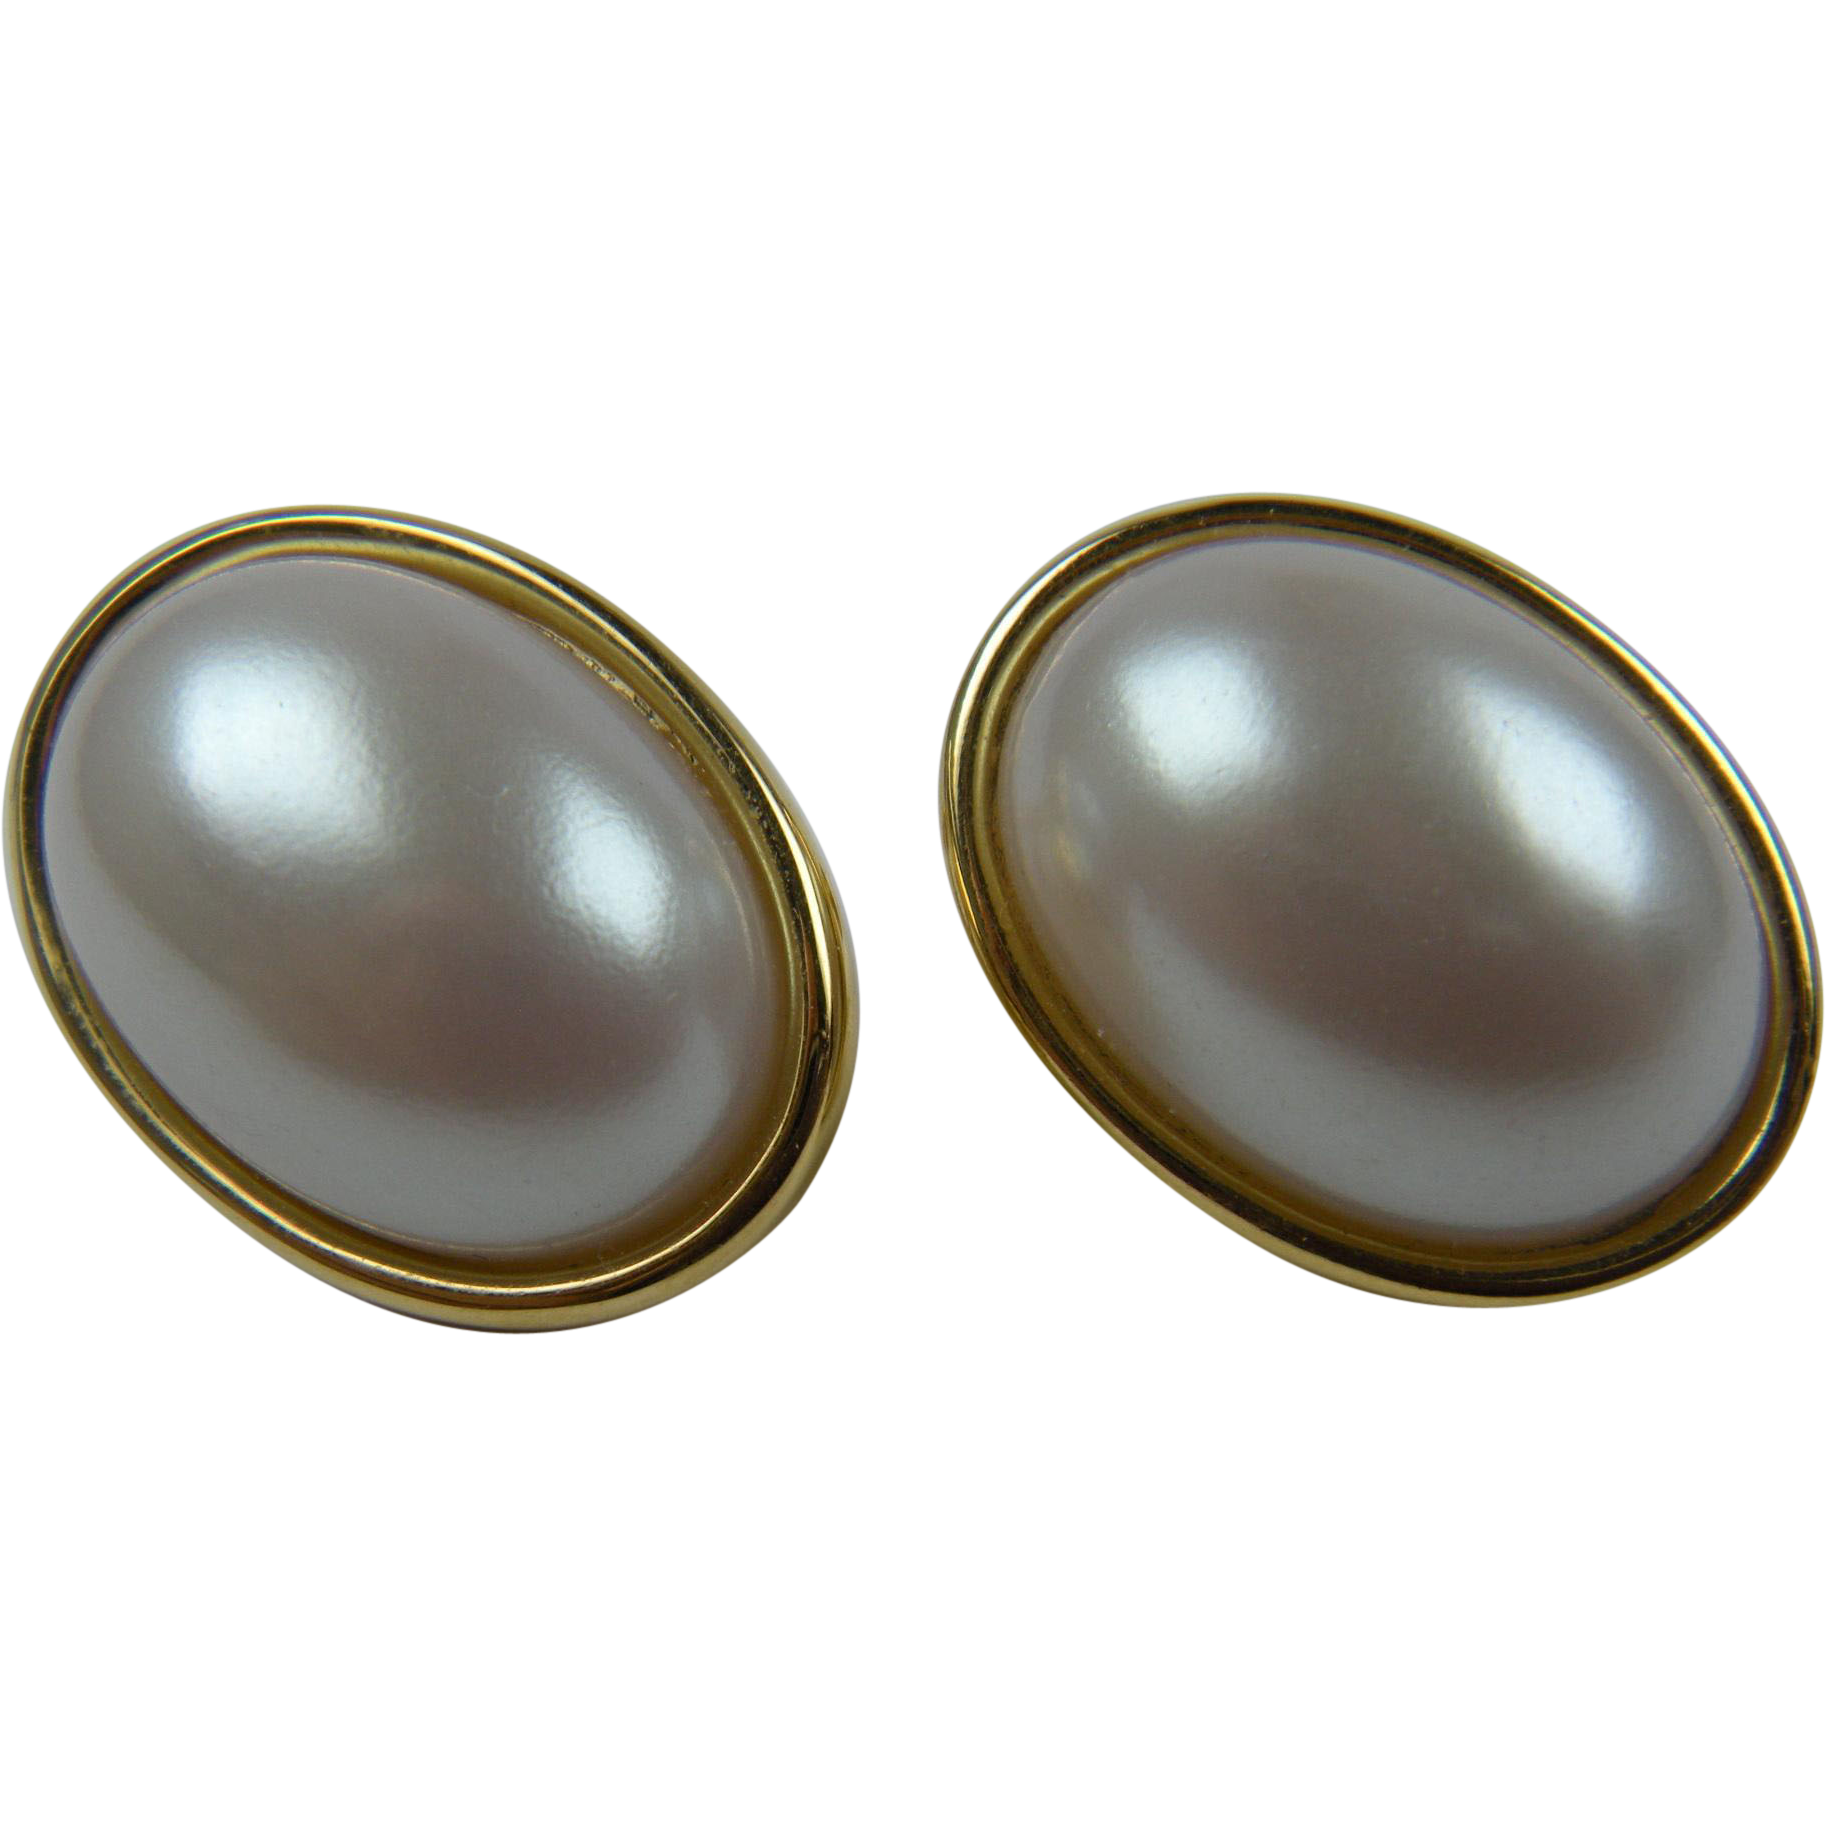 Signed NAPIER Imitation Pearl Earrings with Adjustable Clip Backs